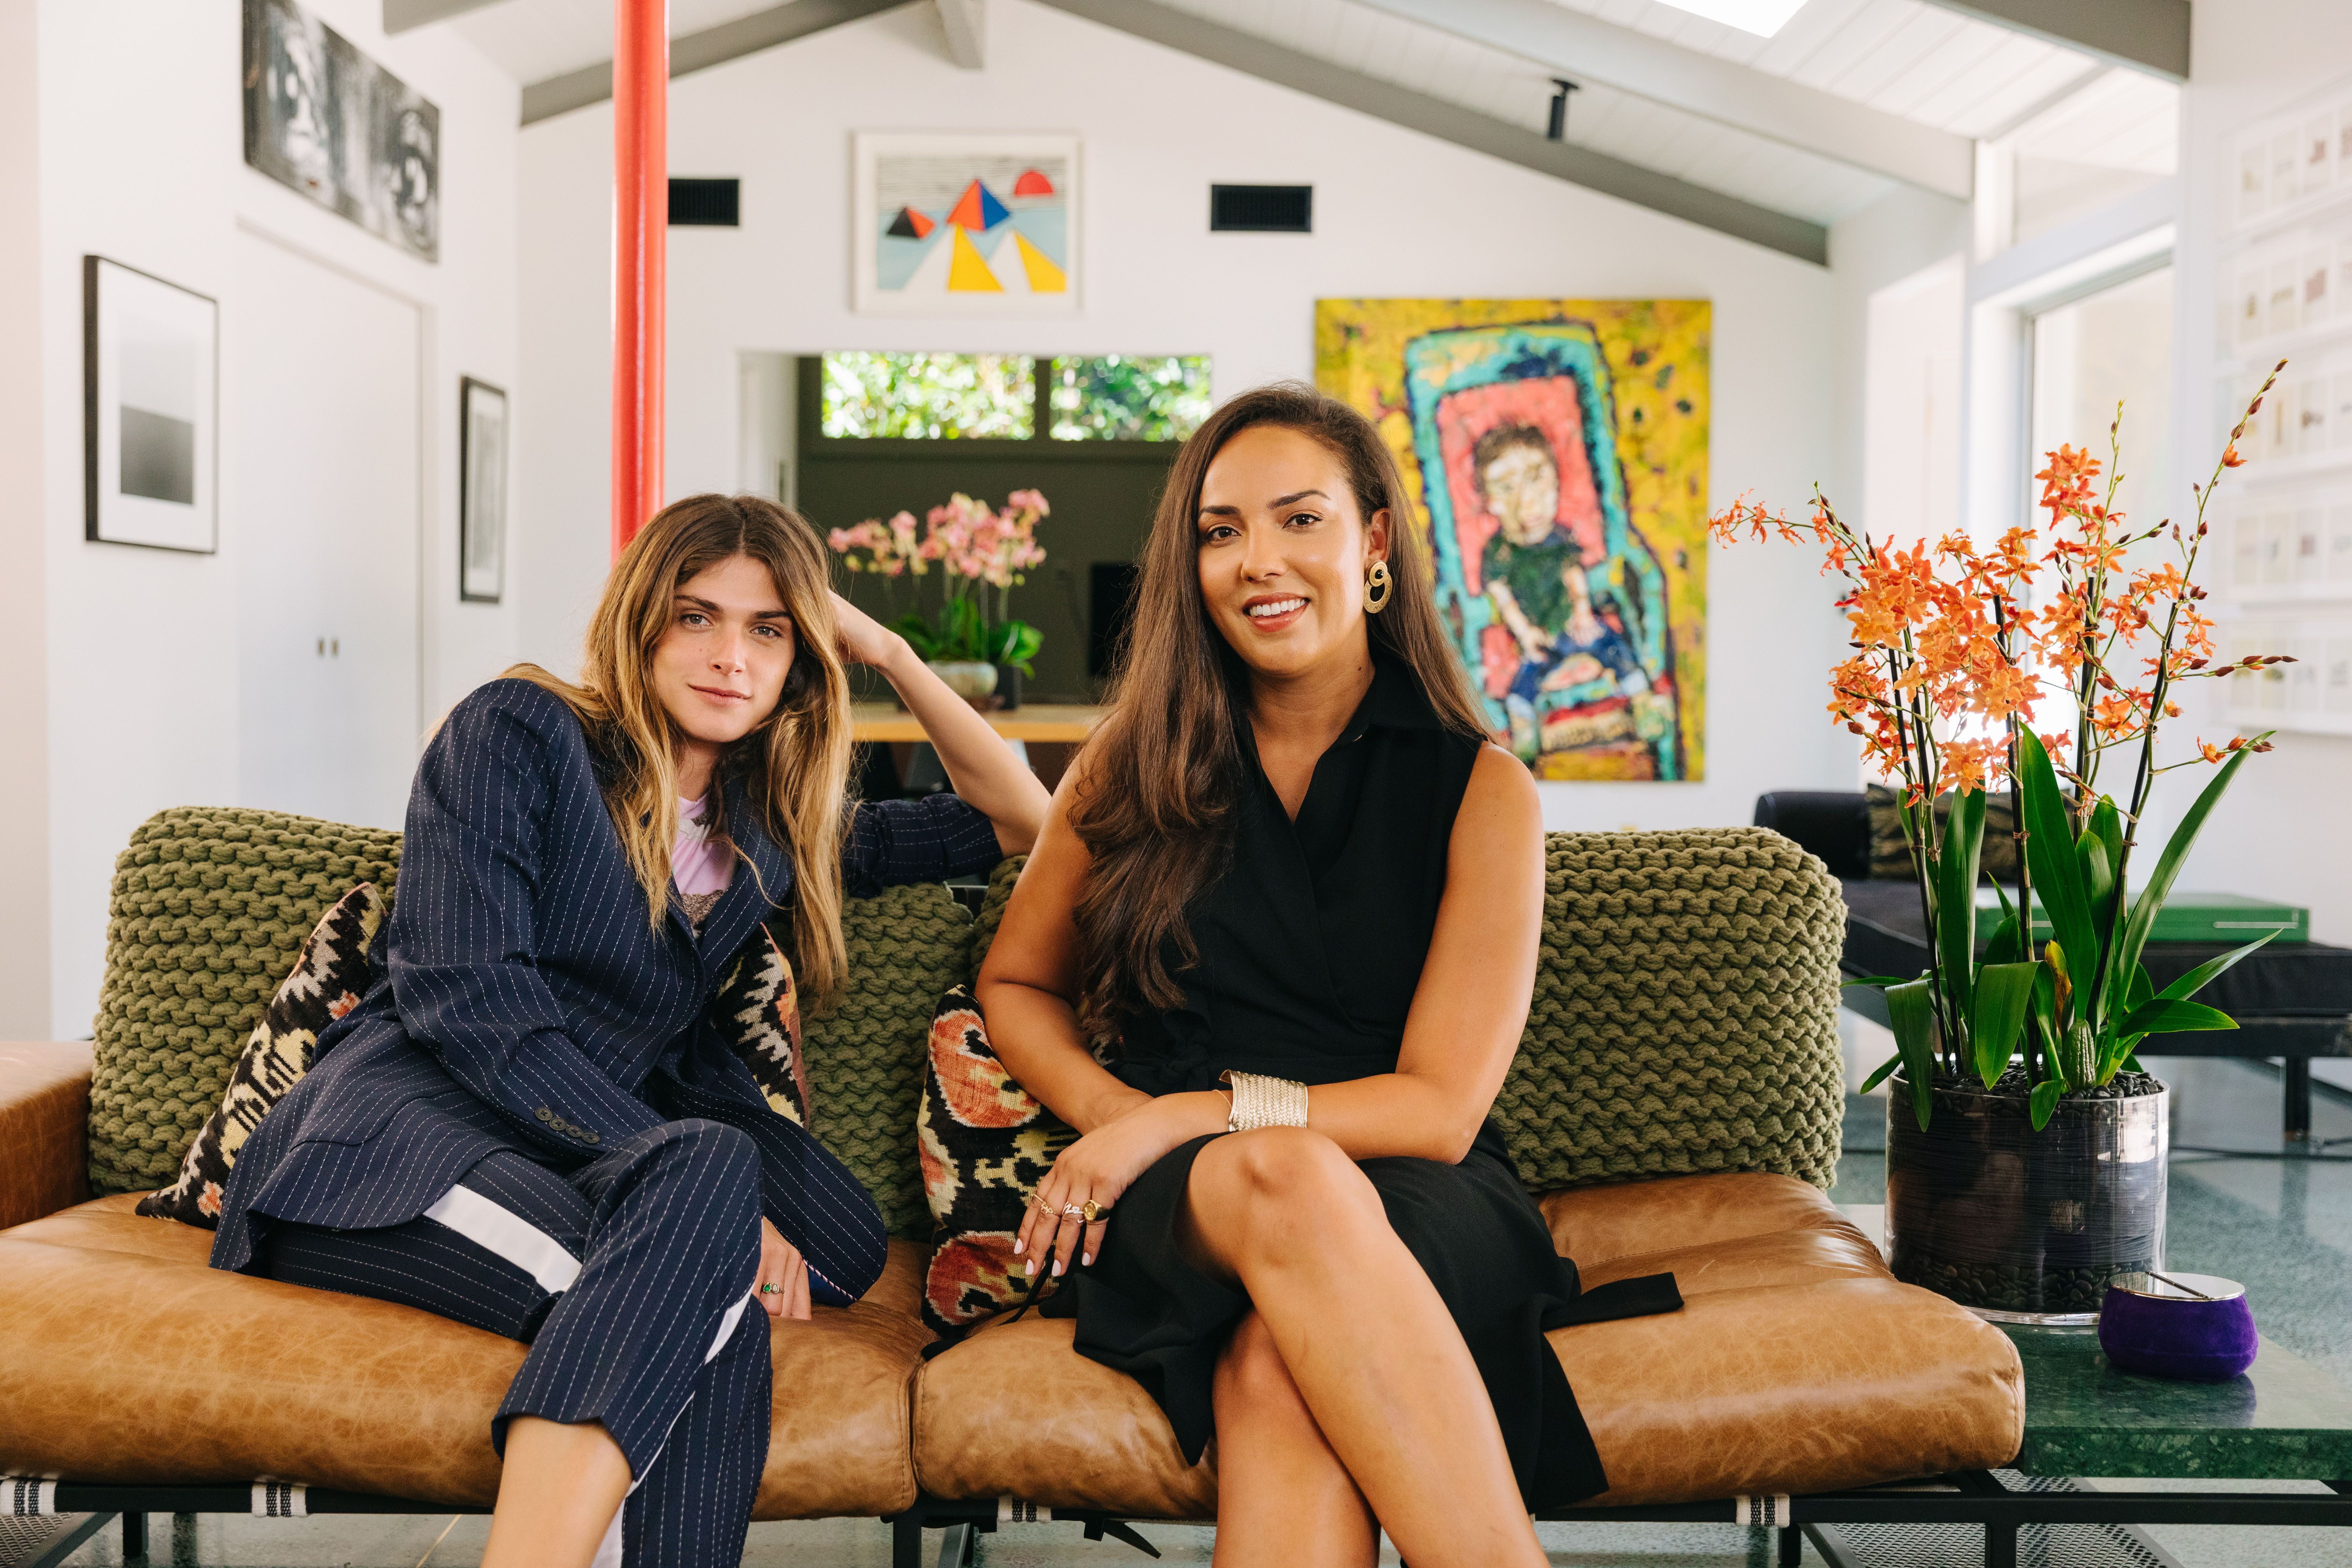 5 artists to know about now by Princess Alia Al-Senussi and Elisa Sednaoui